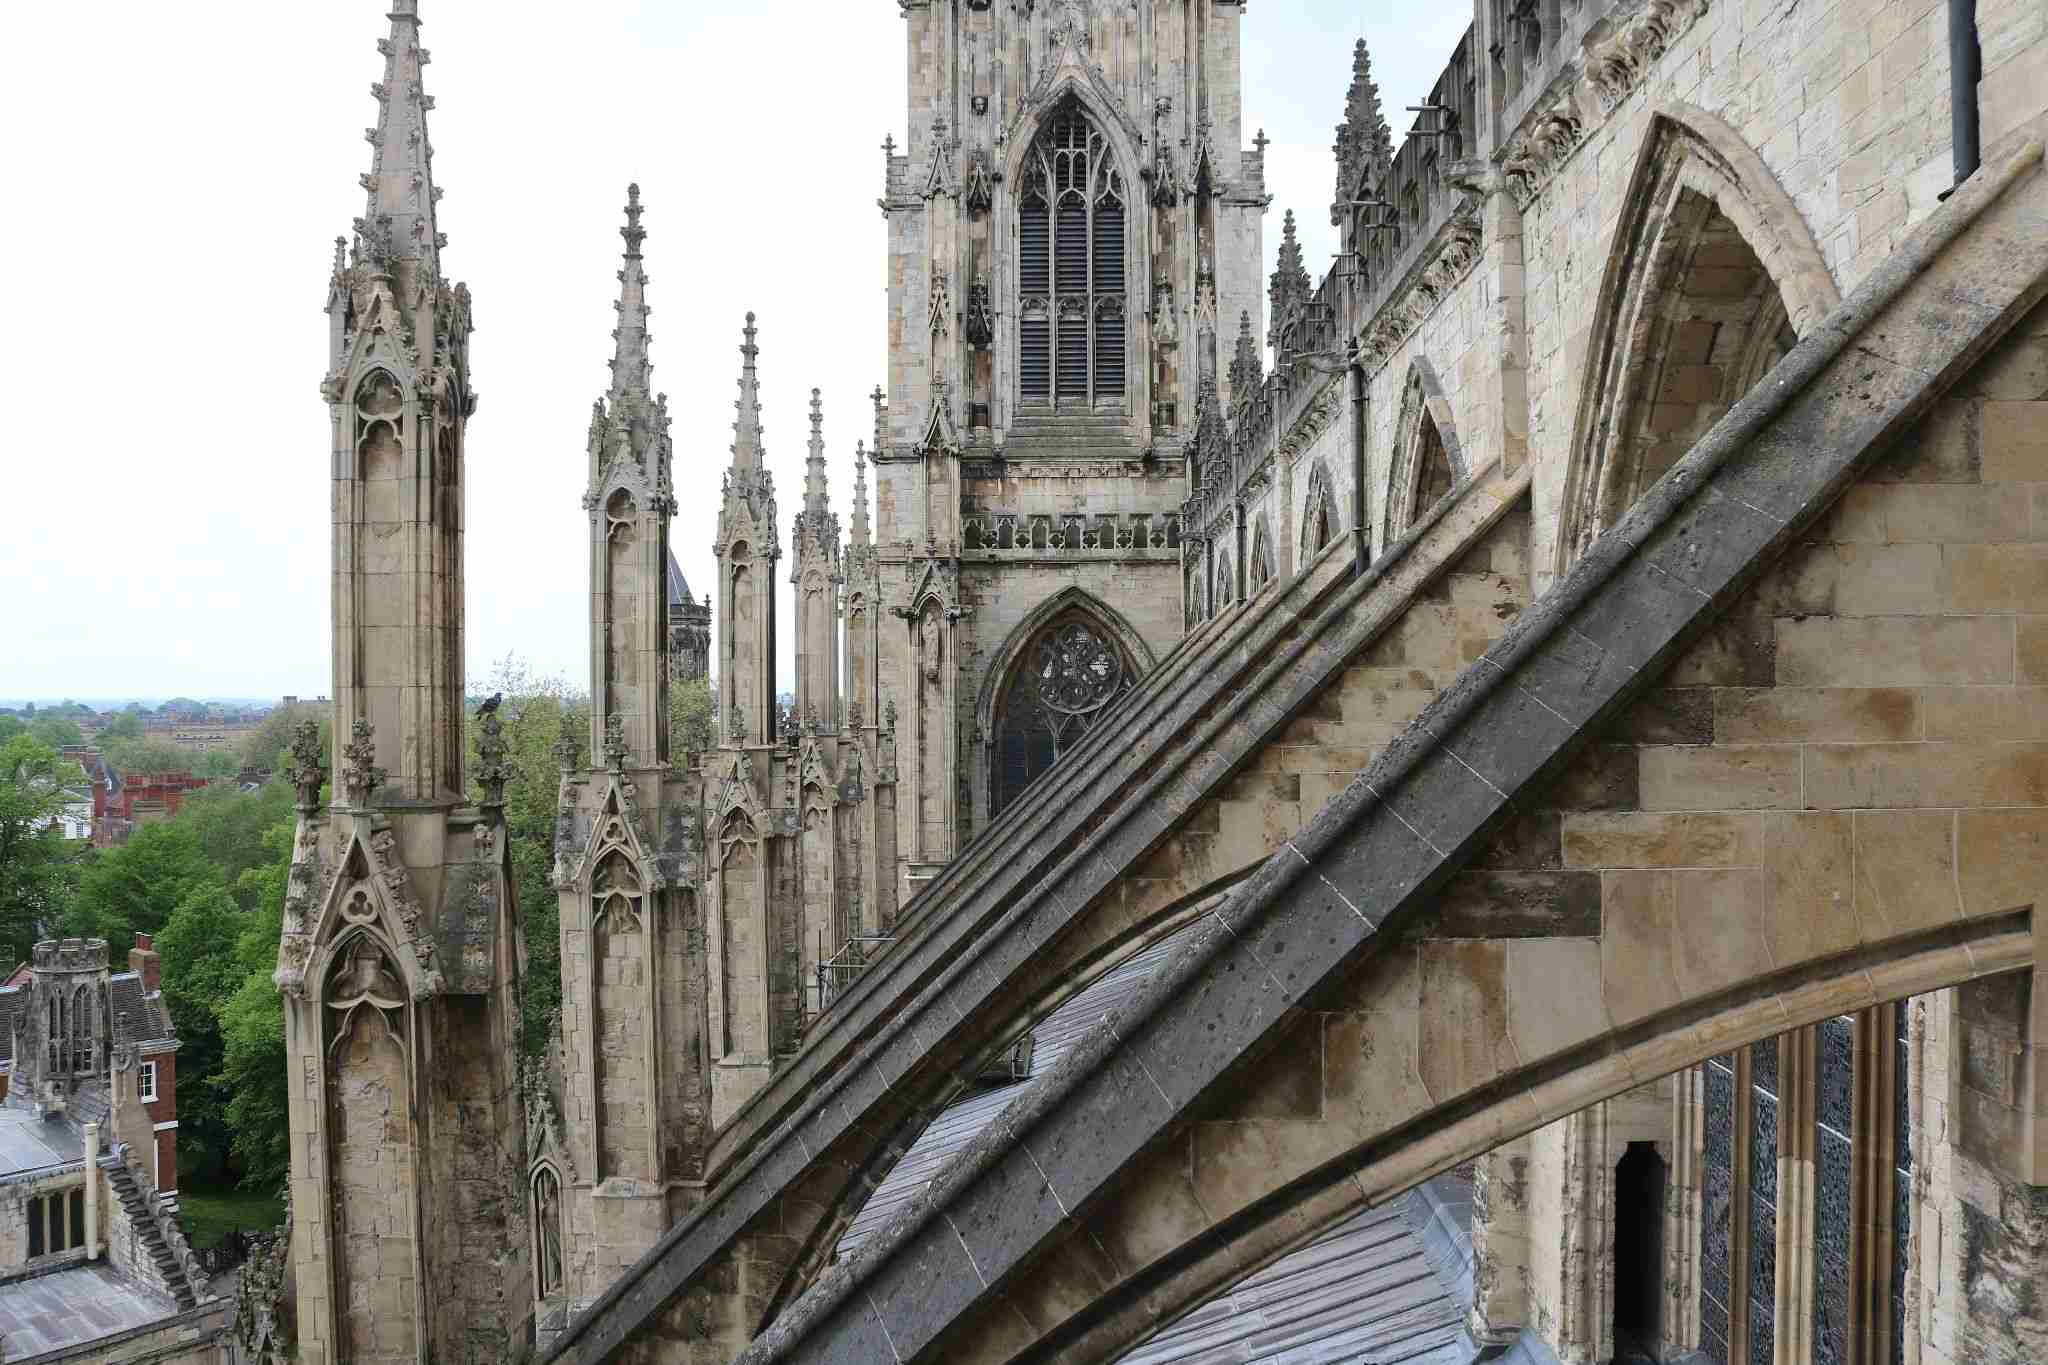 Towers of York minster